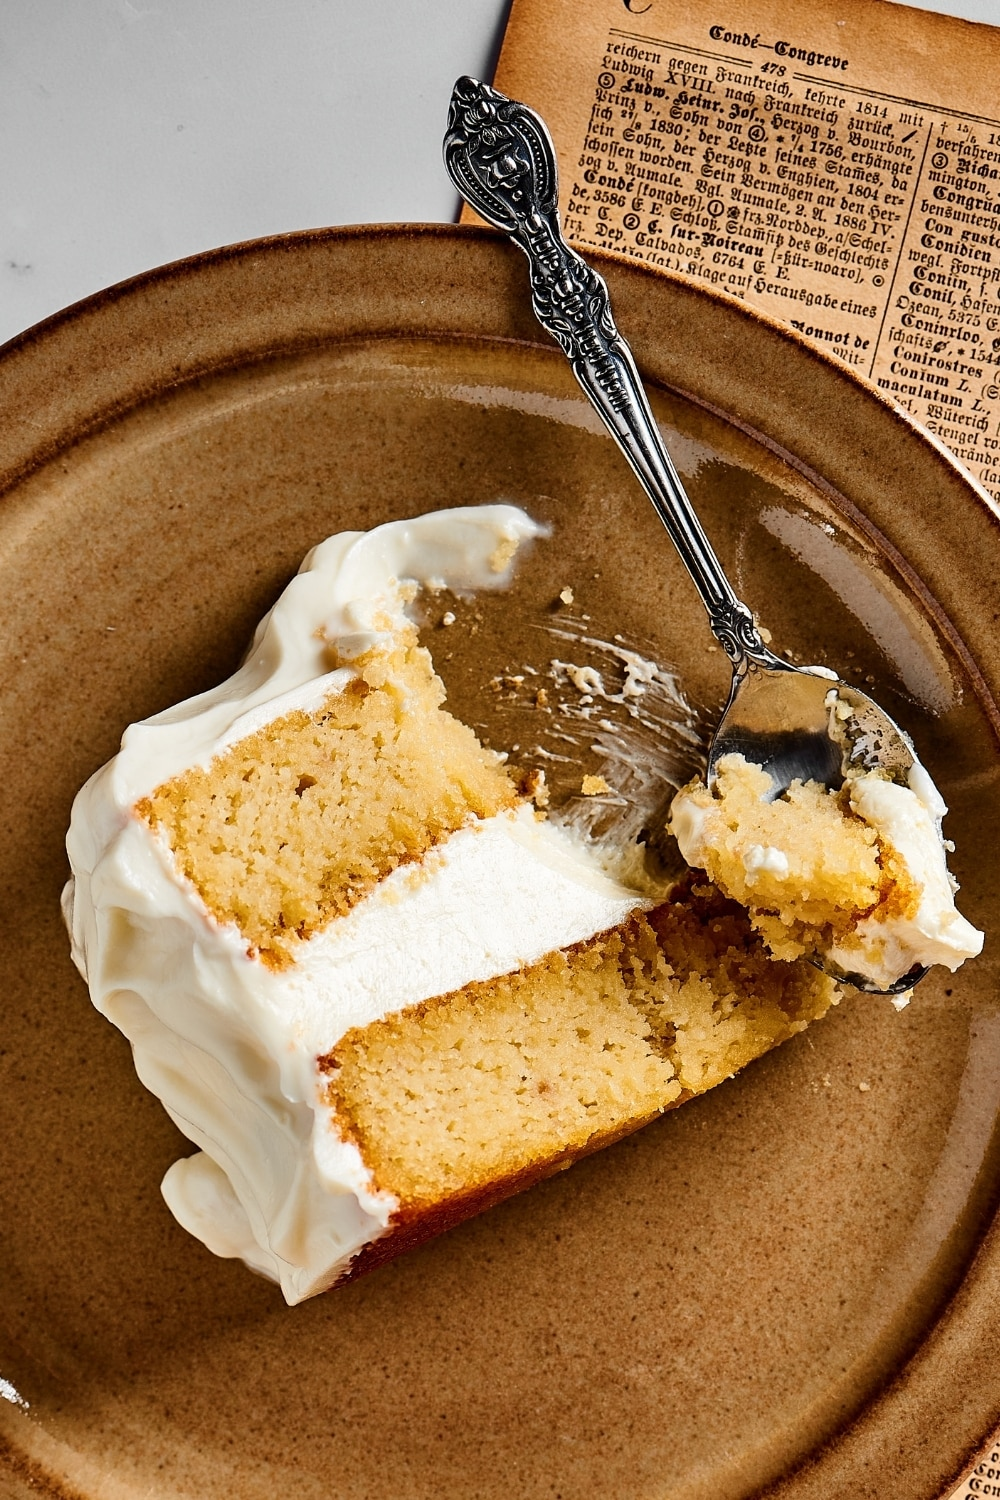 A slice of vanilla cake on top of a brown plate on a piece of newspaper. A spoon is rusting on the edge of the plate with the head of the spoon right next to the cake with a piece of it on it.